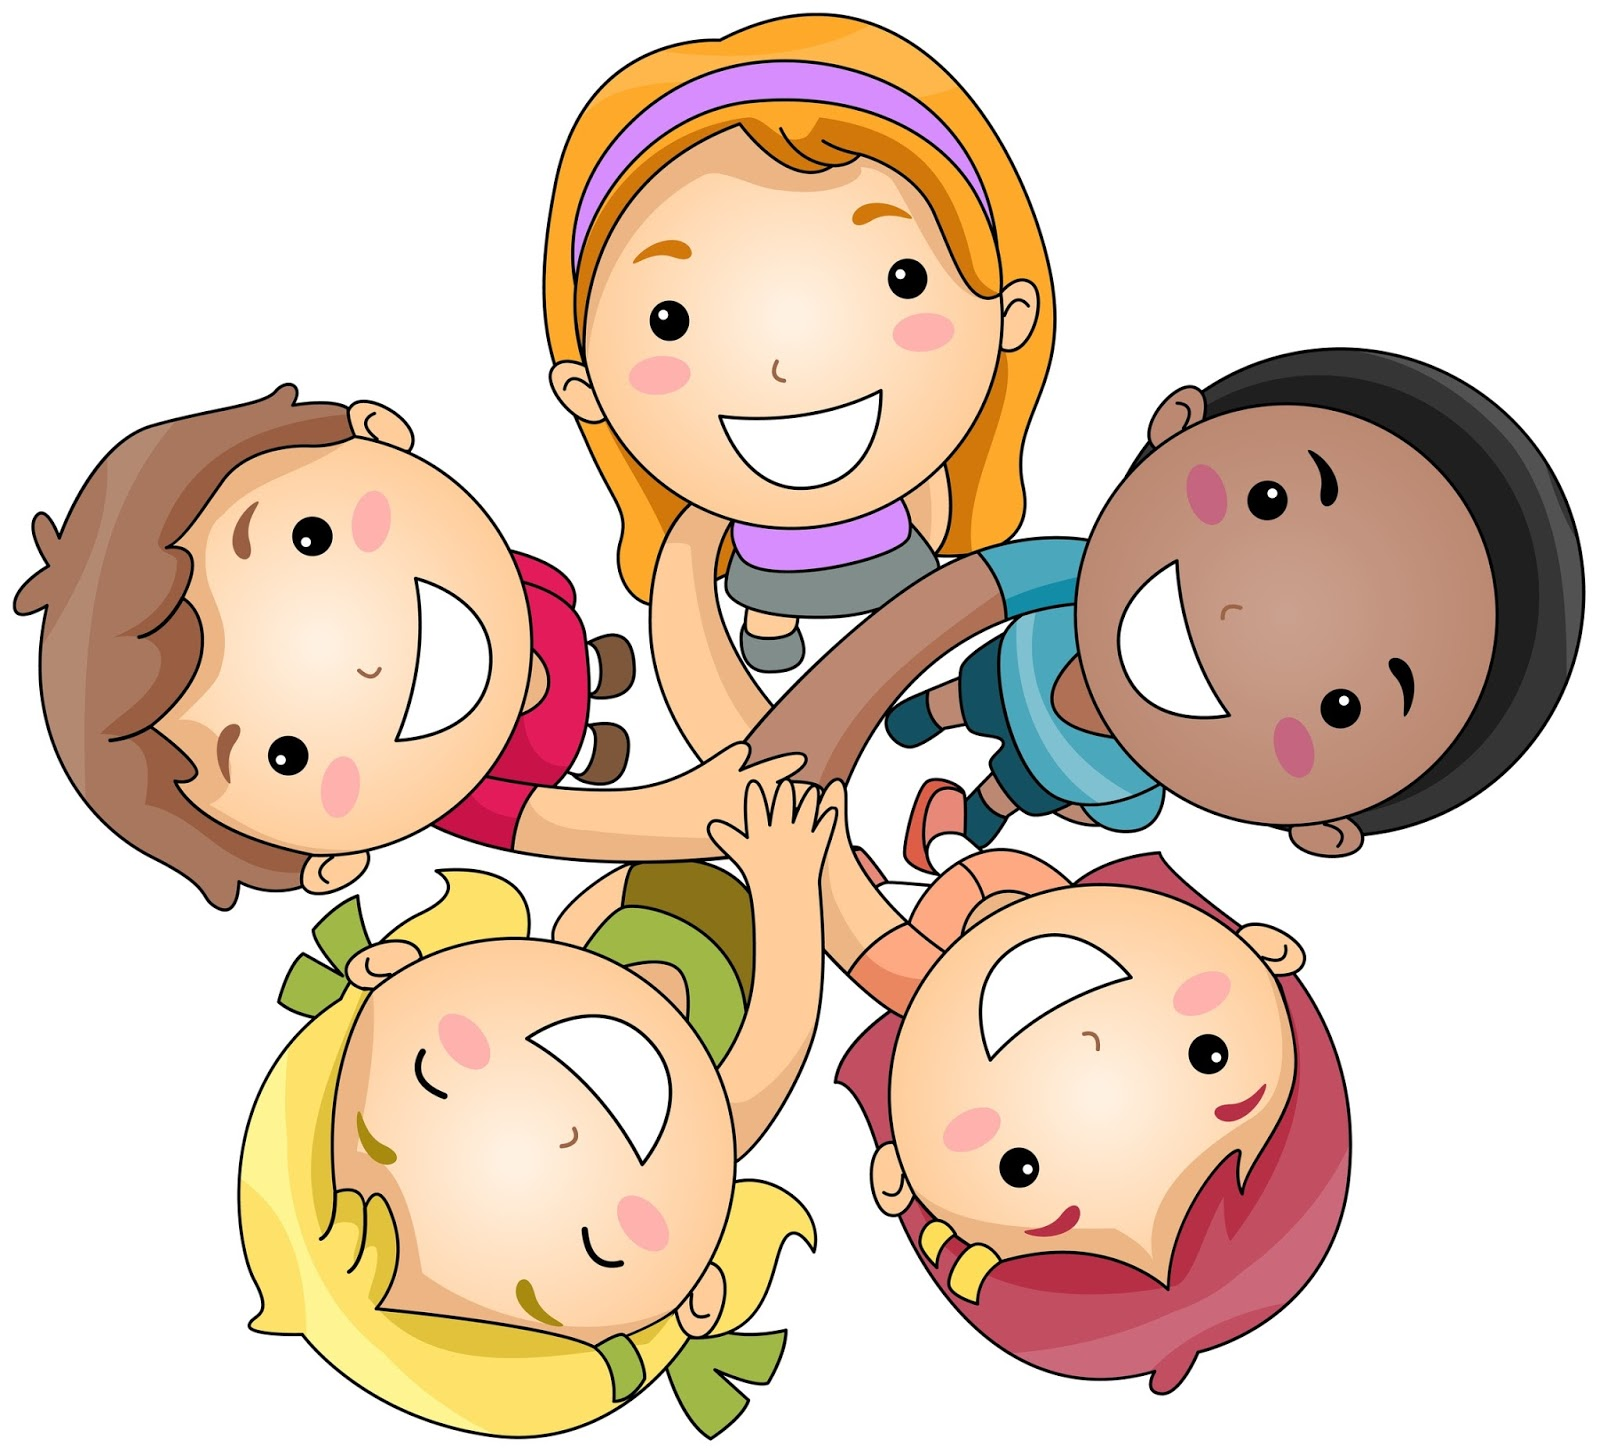 image freeuse Free download clip art. Friendship clipart.